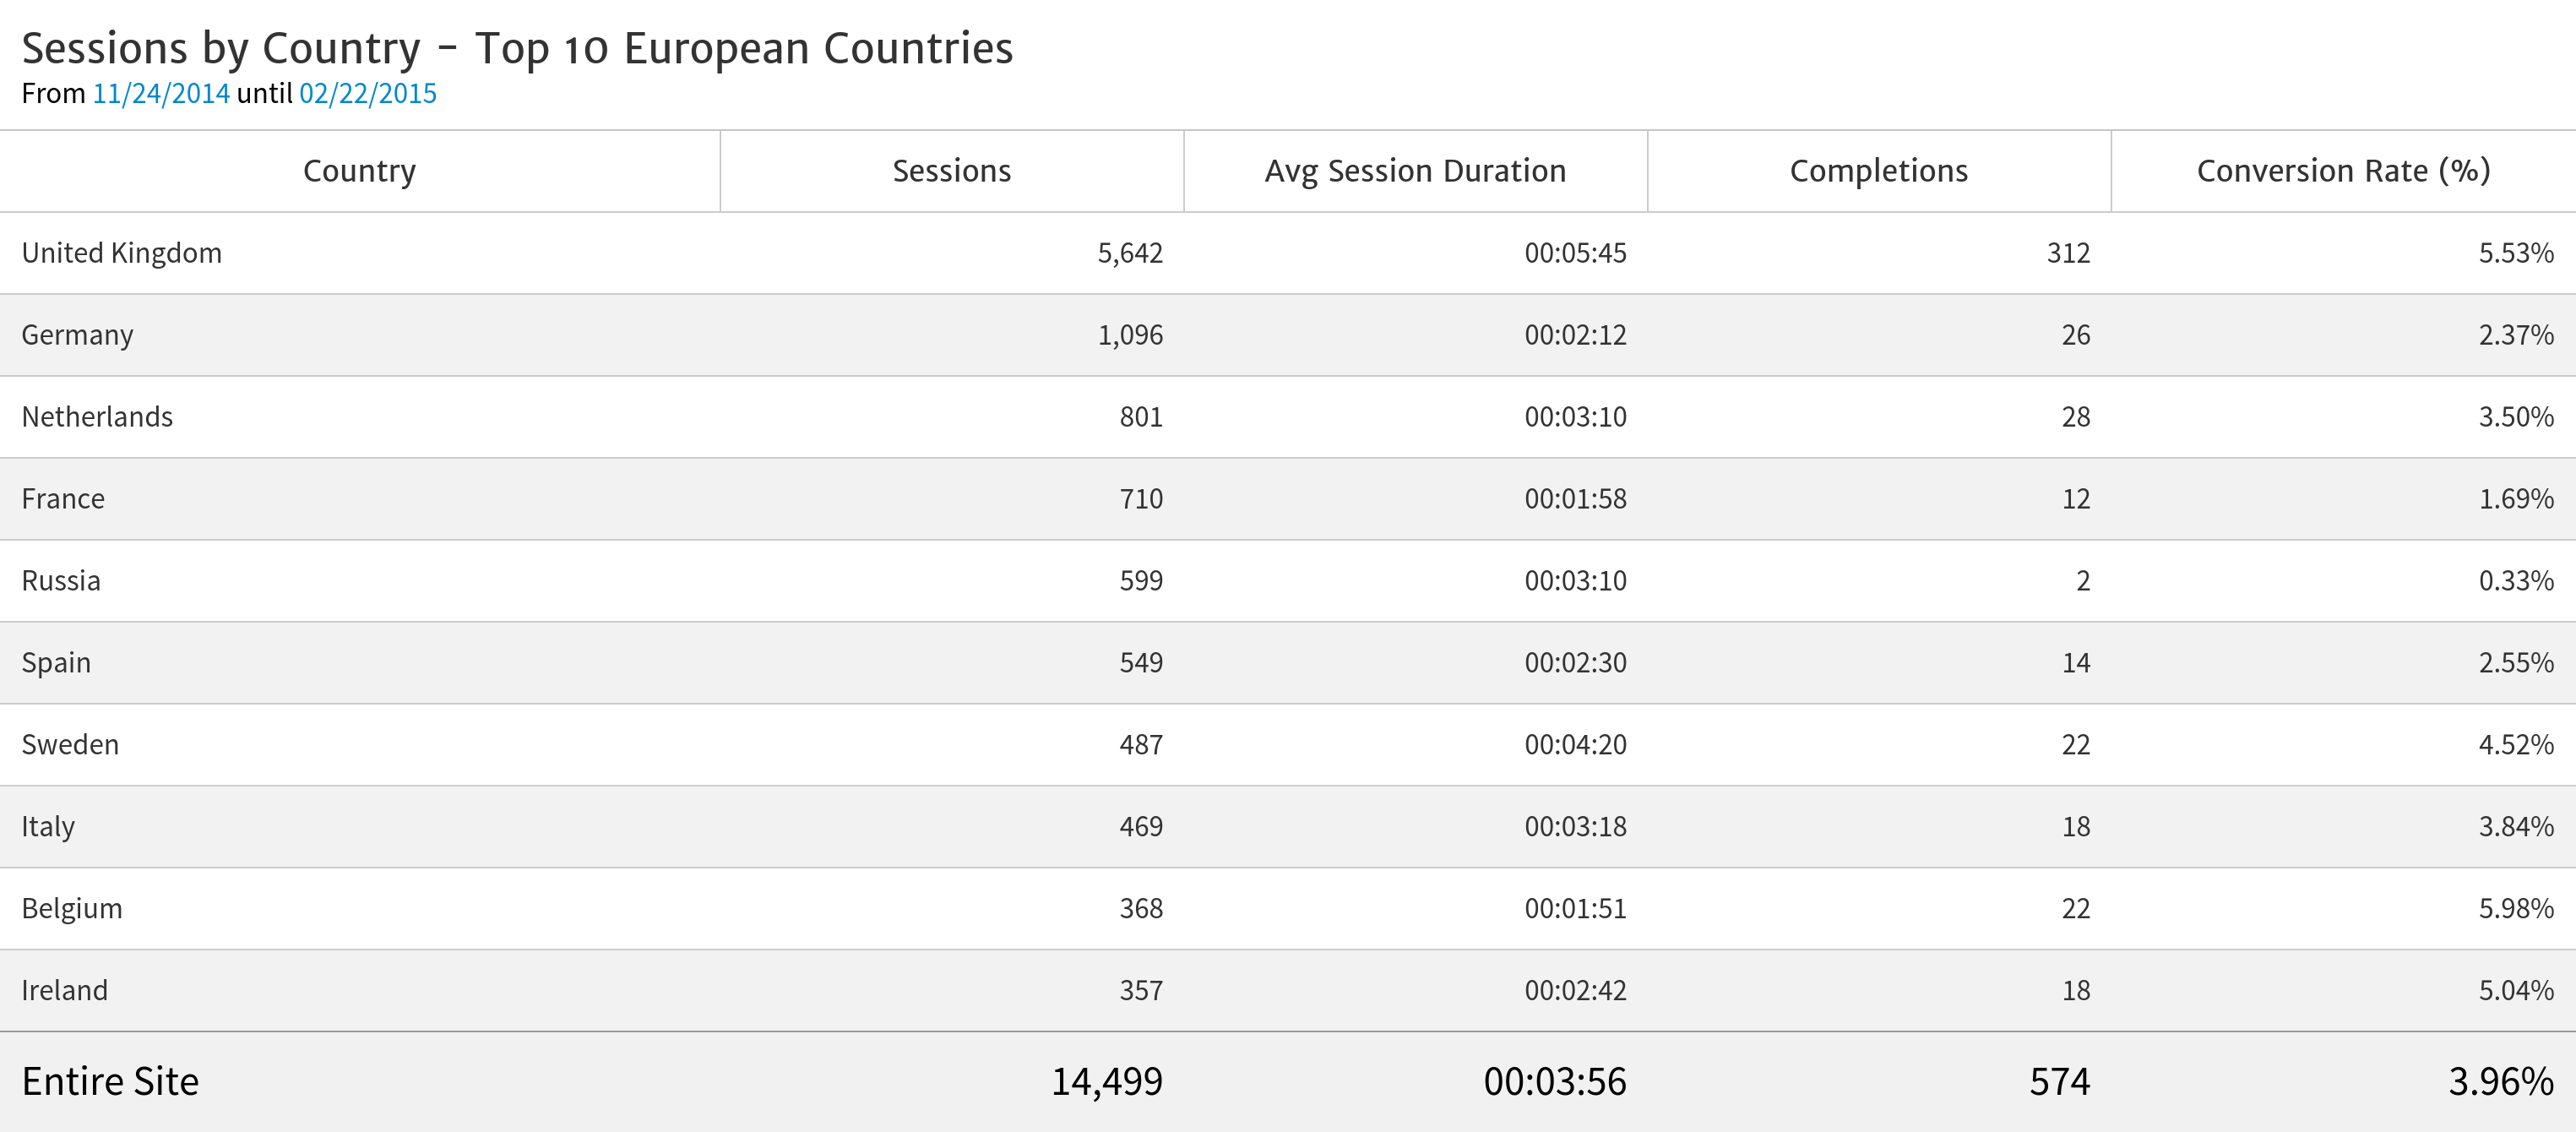 Web Traffic by Country in Europe - Table